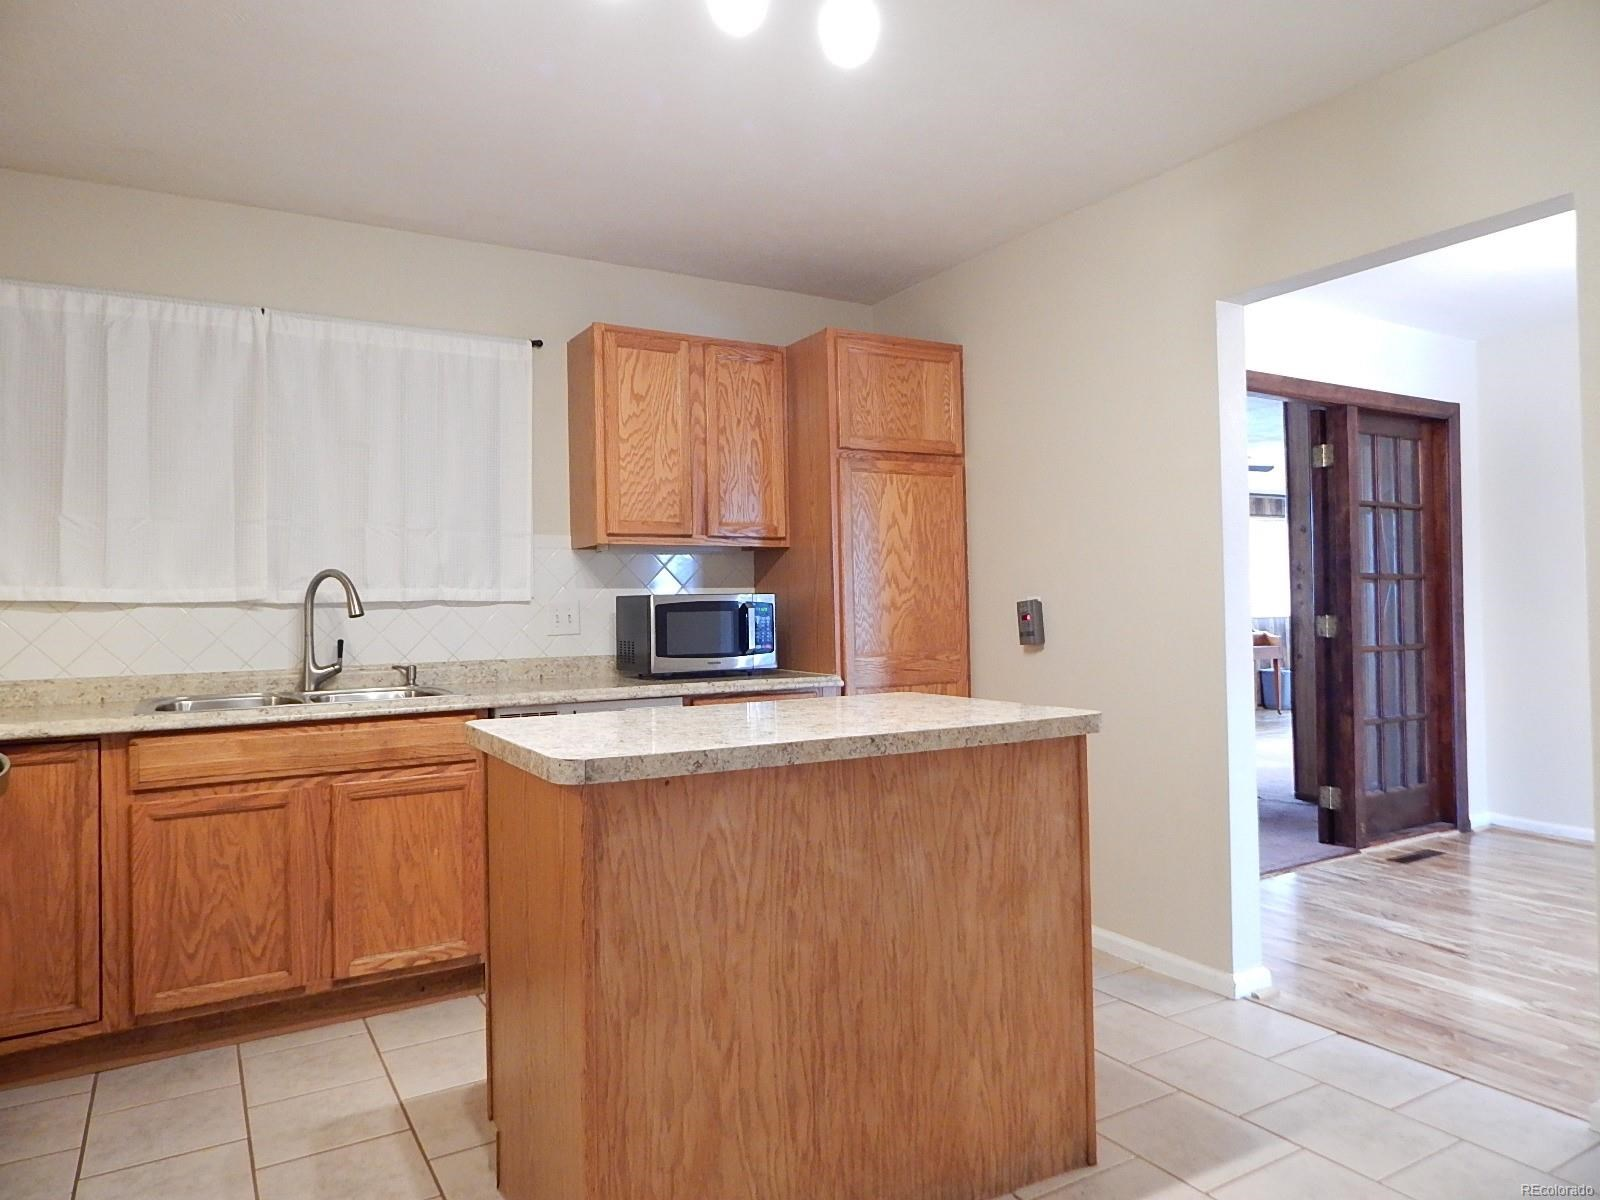 MLS# 9095515 - 13 - 10090 W 21st Place, Lakewood, CO 80215